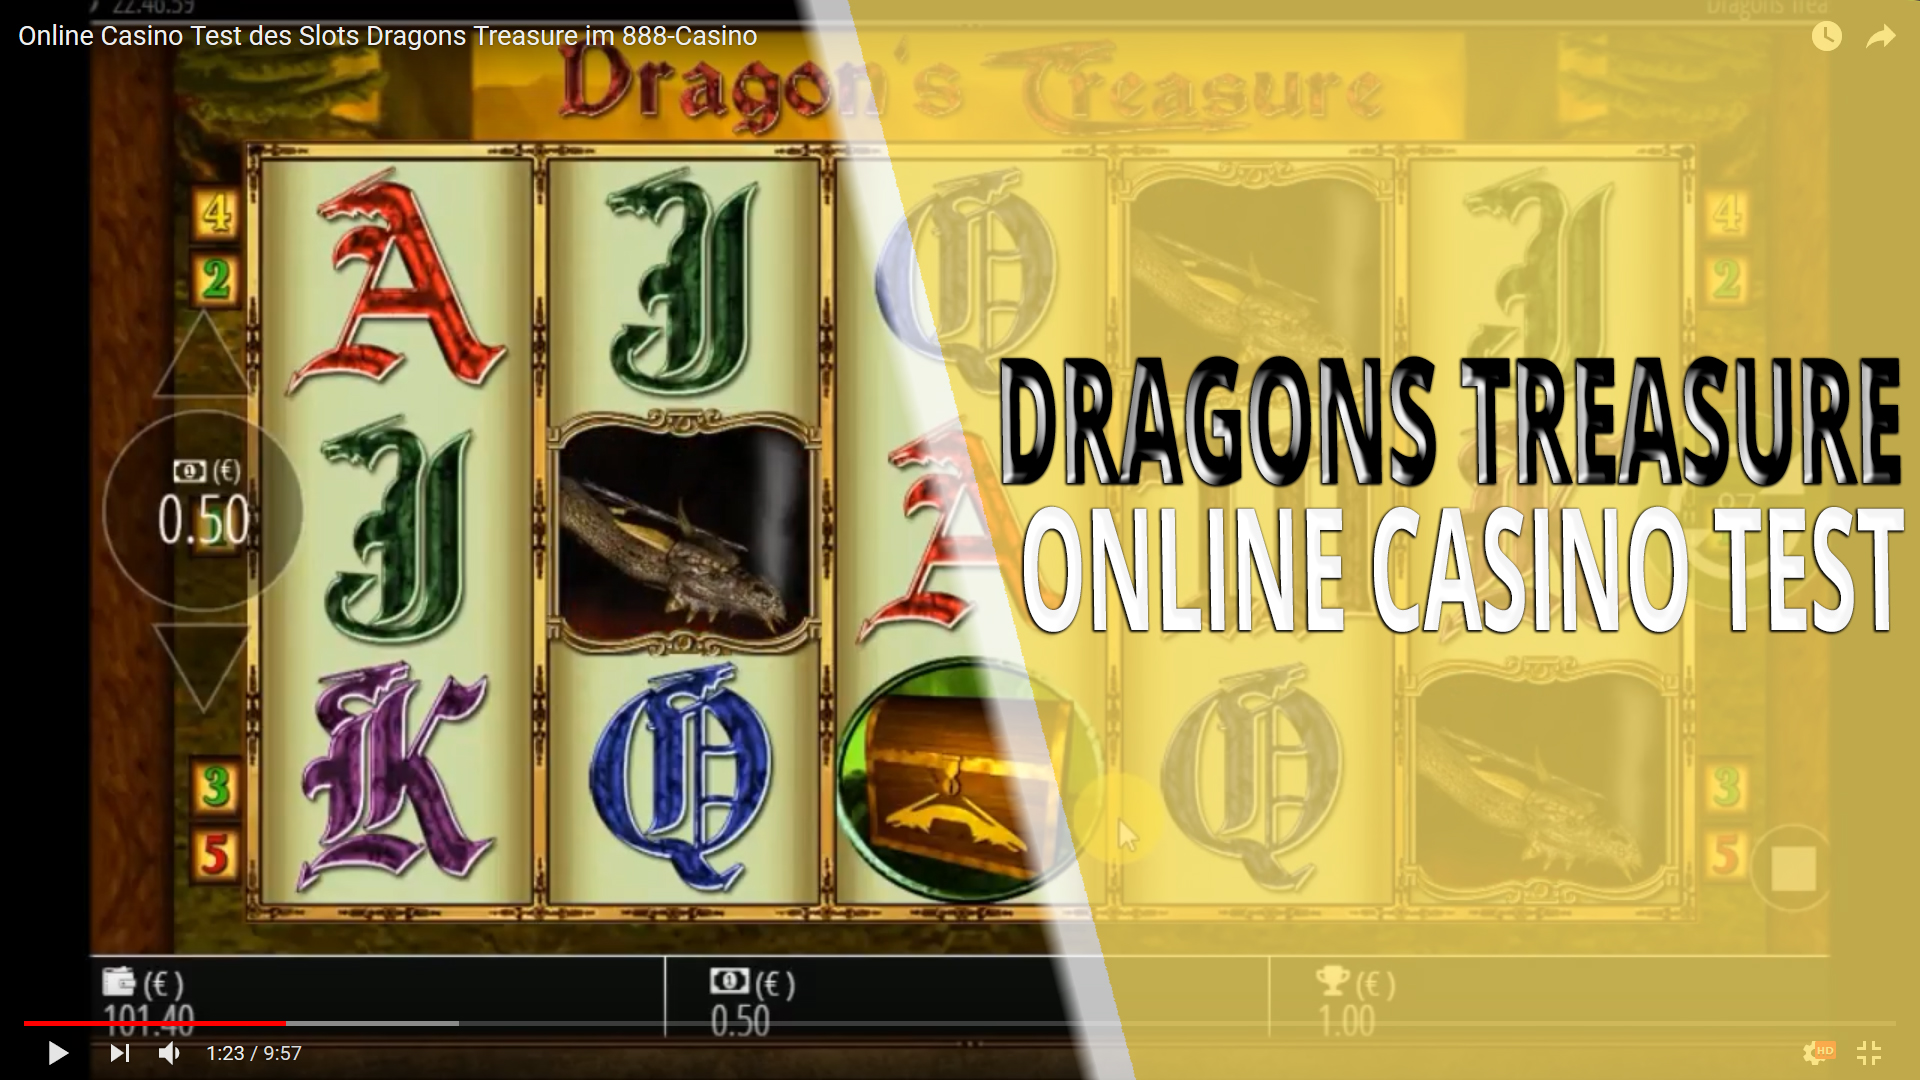 Automatenspiel Slots - Dragons Treasure